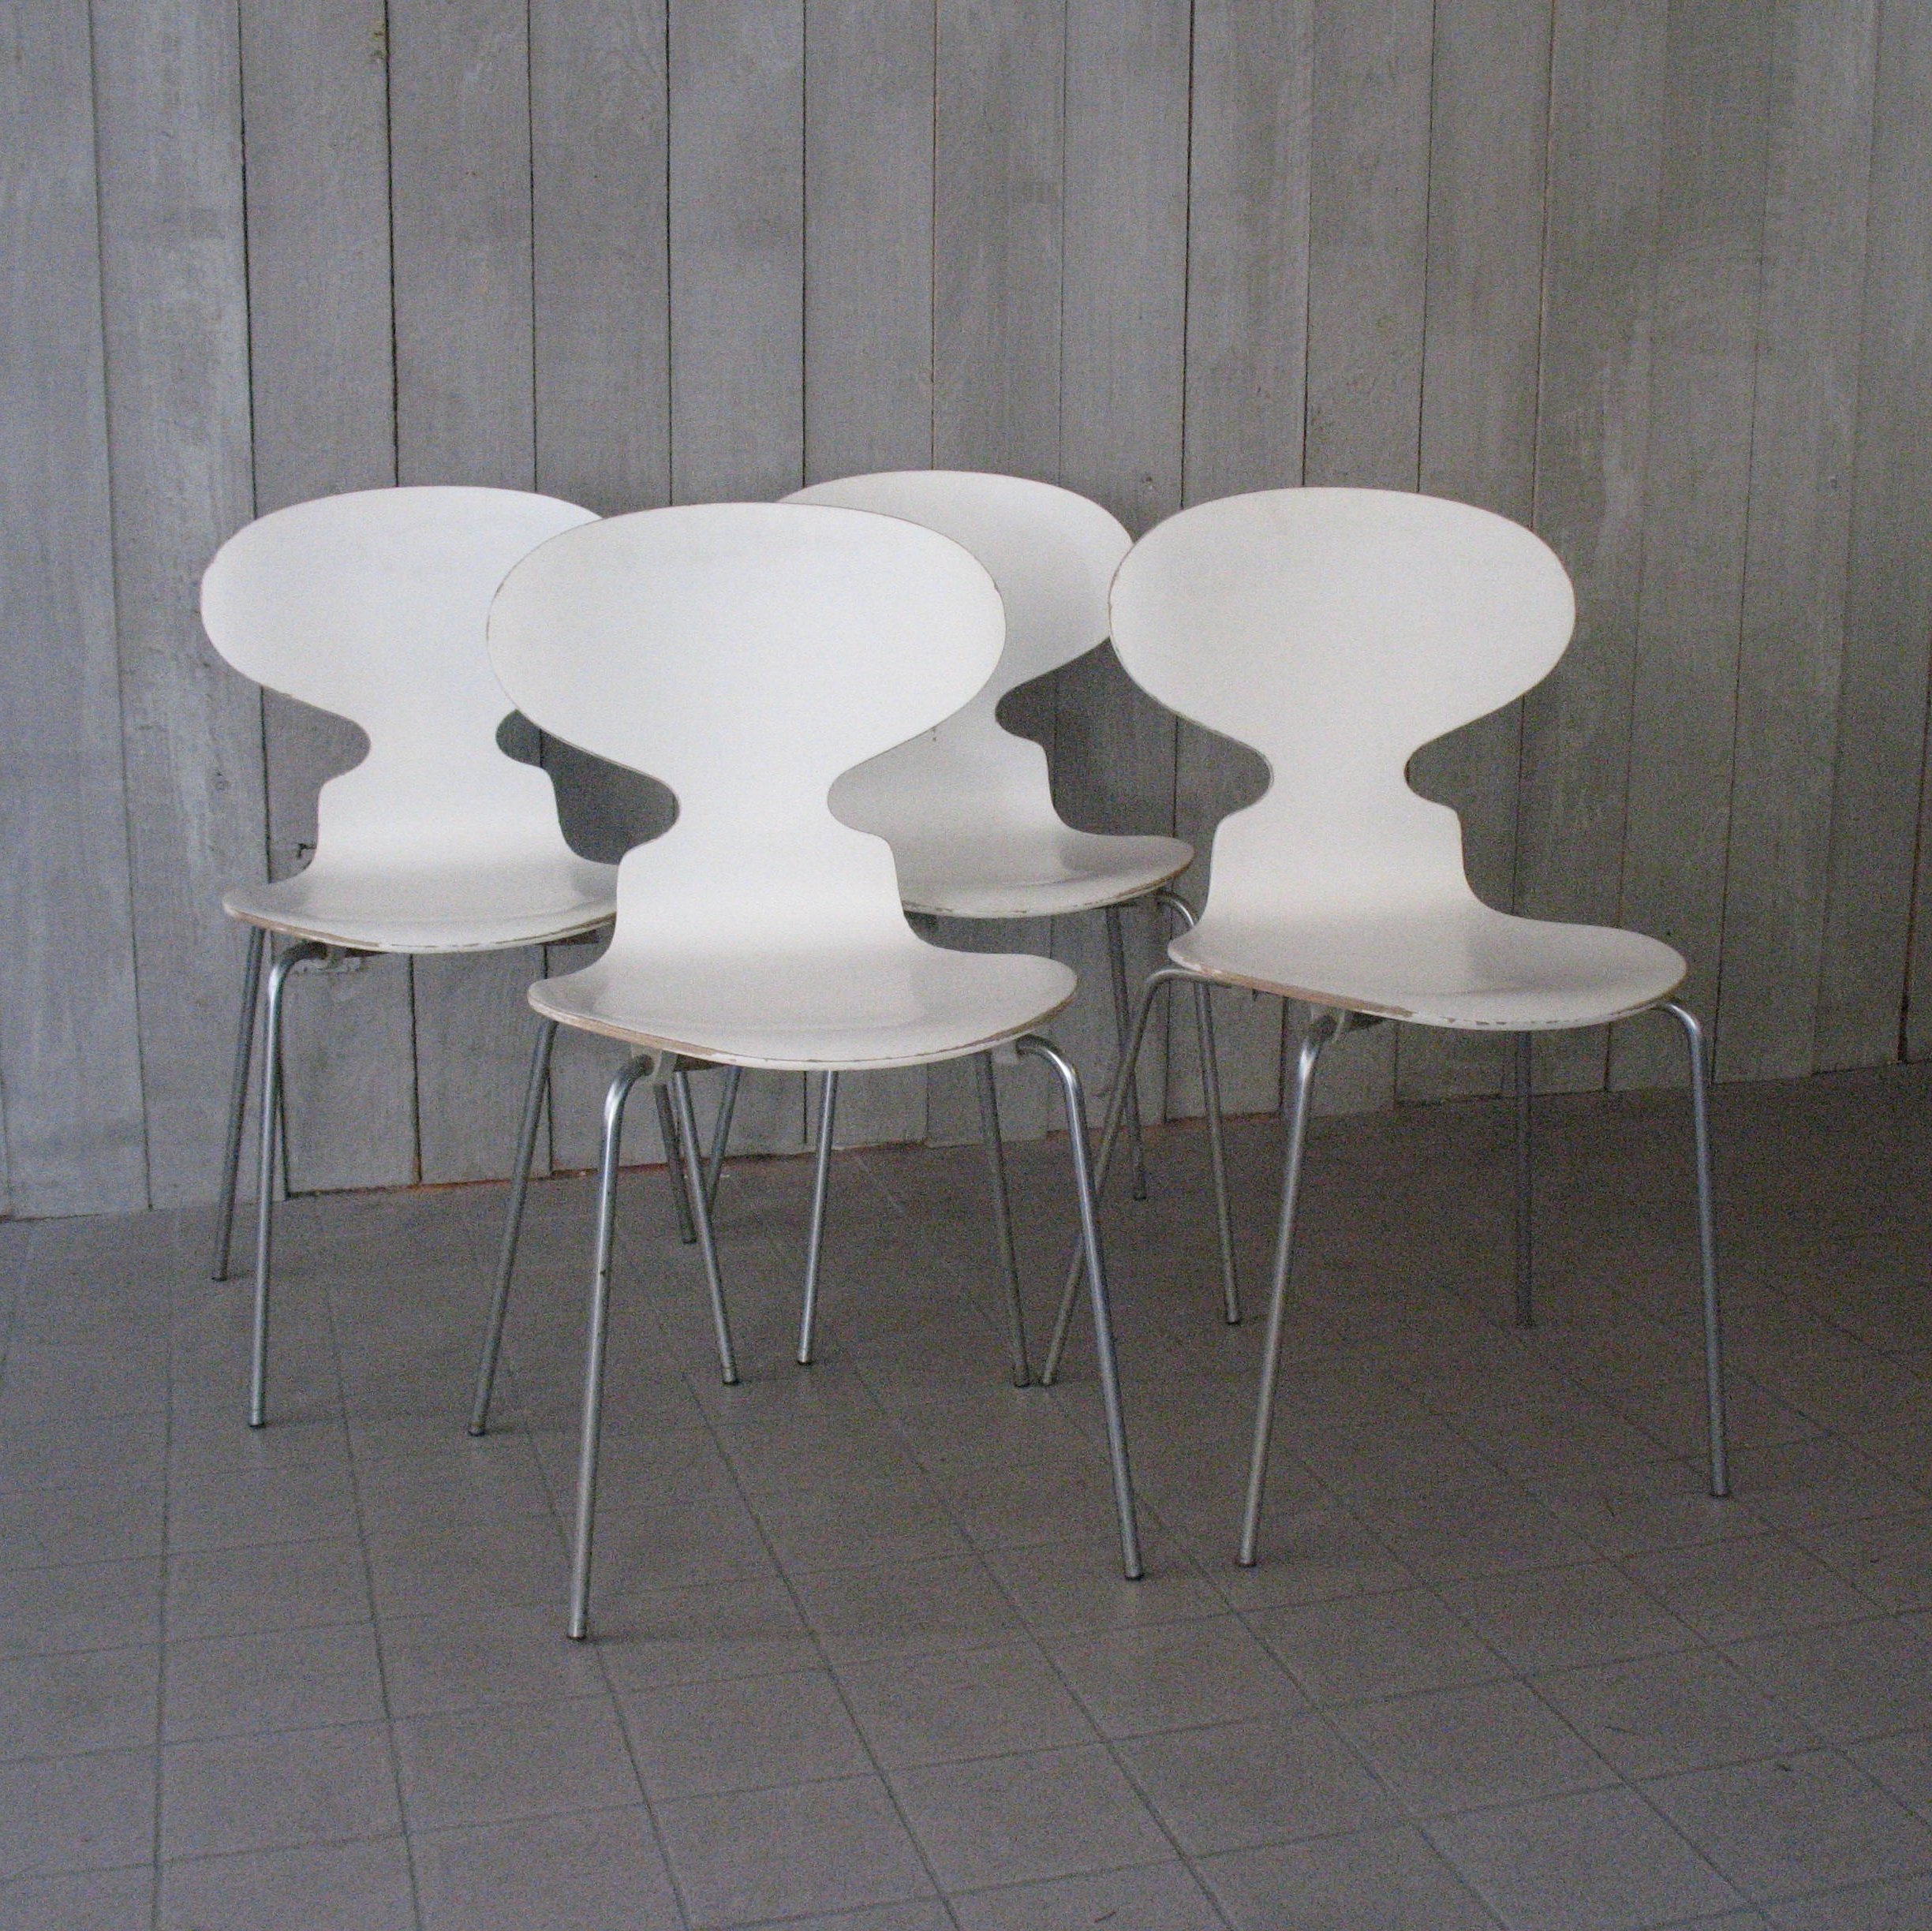 4 x Model 3100 Ant dinner chair by Arne Jacobsen for Fritz Hansen 1970s